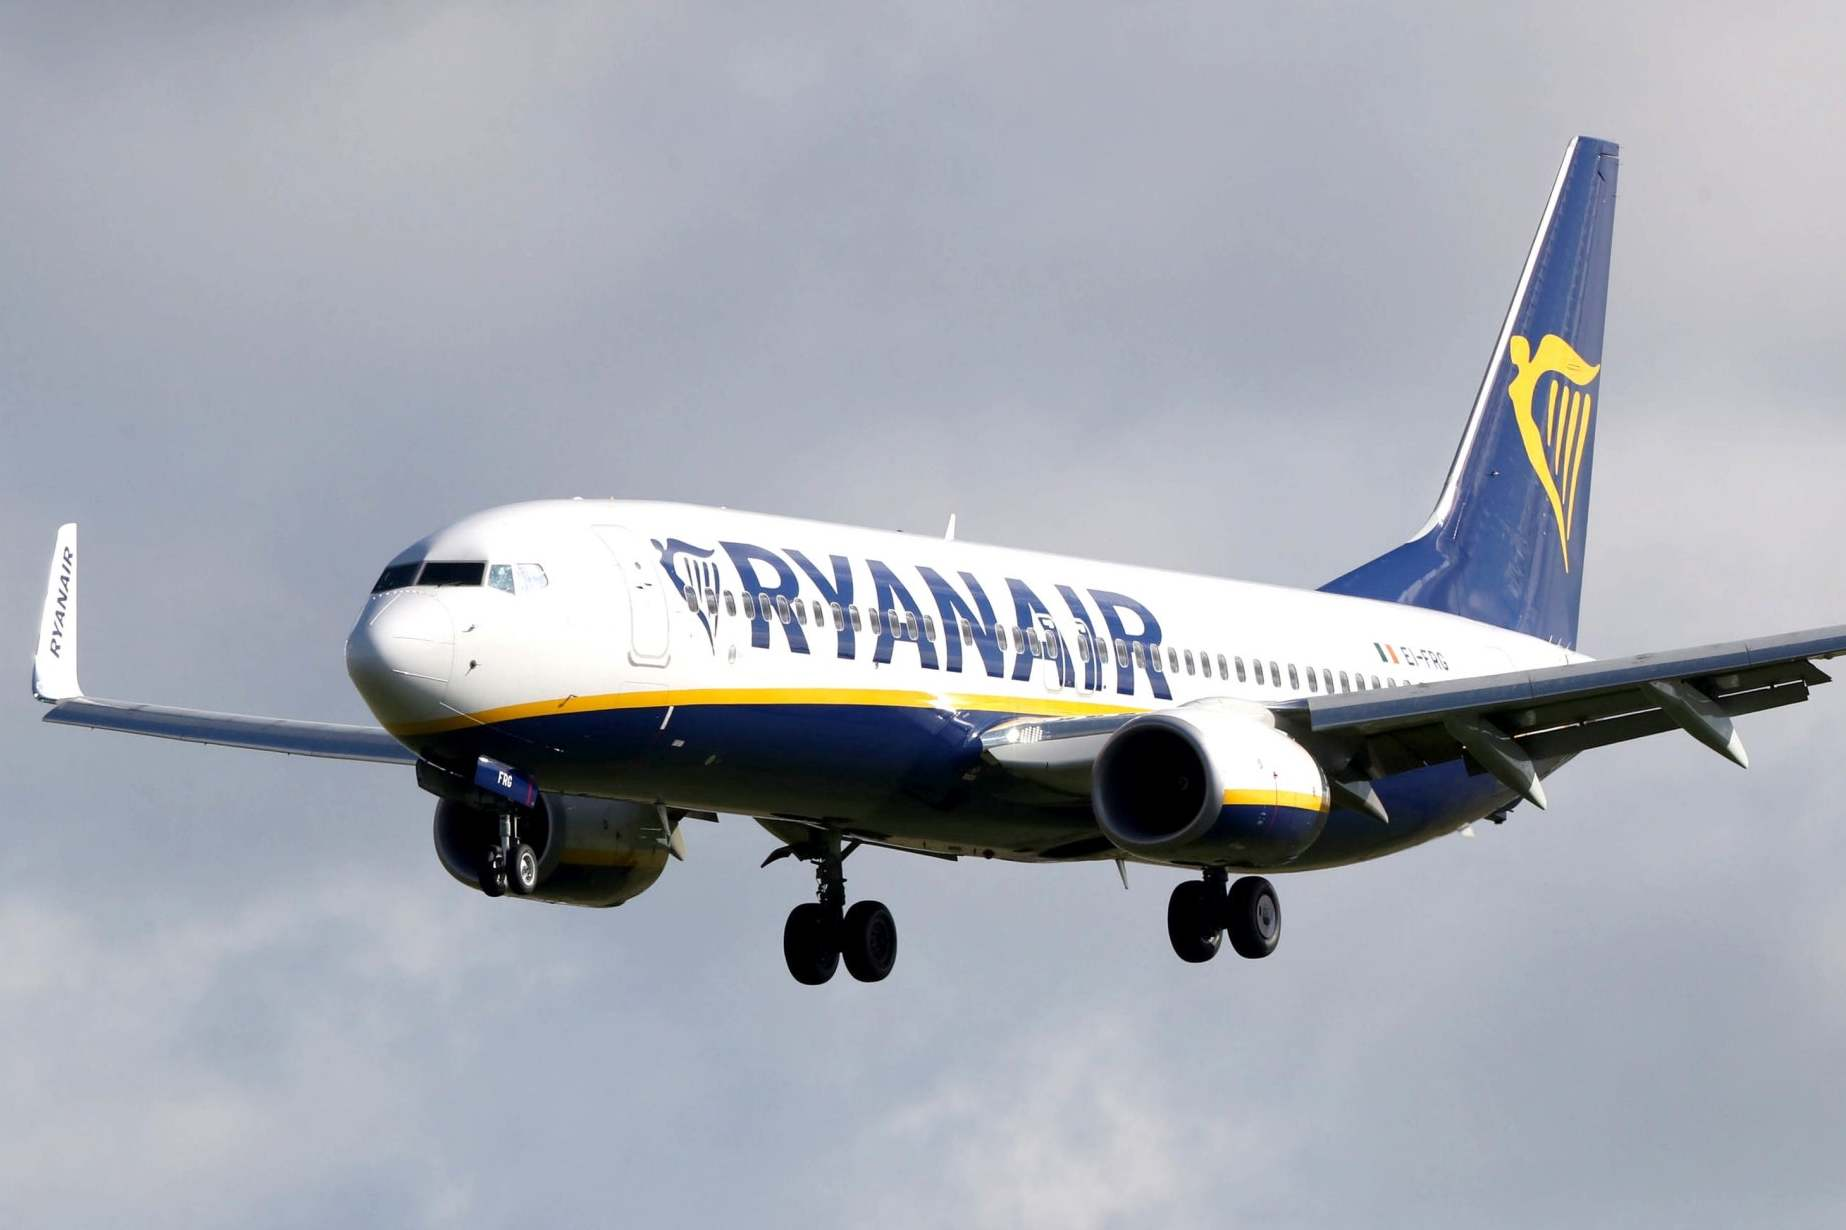 Ryanair named worst brand for customer service in Which? survey